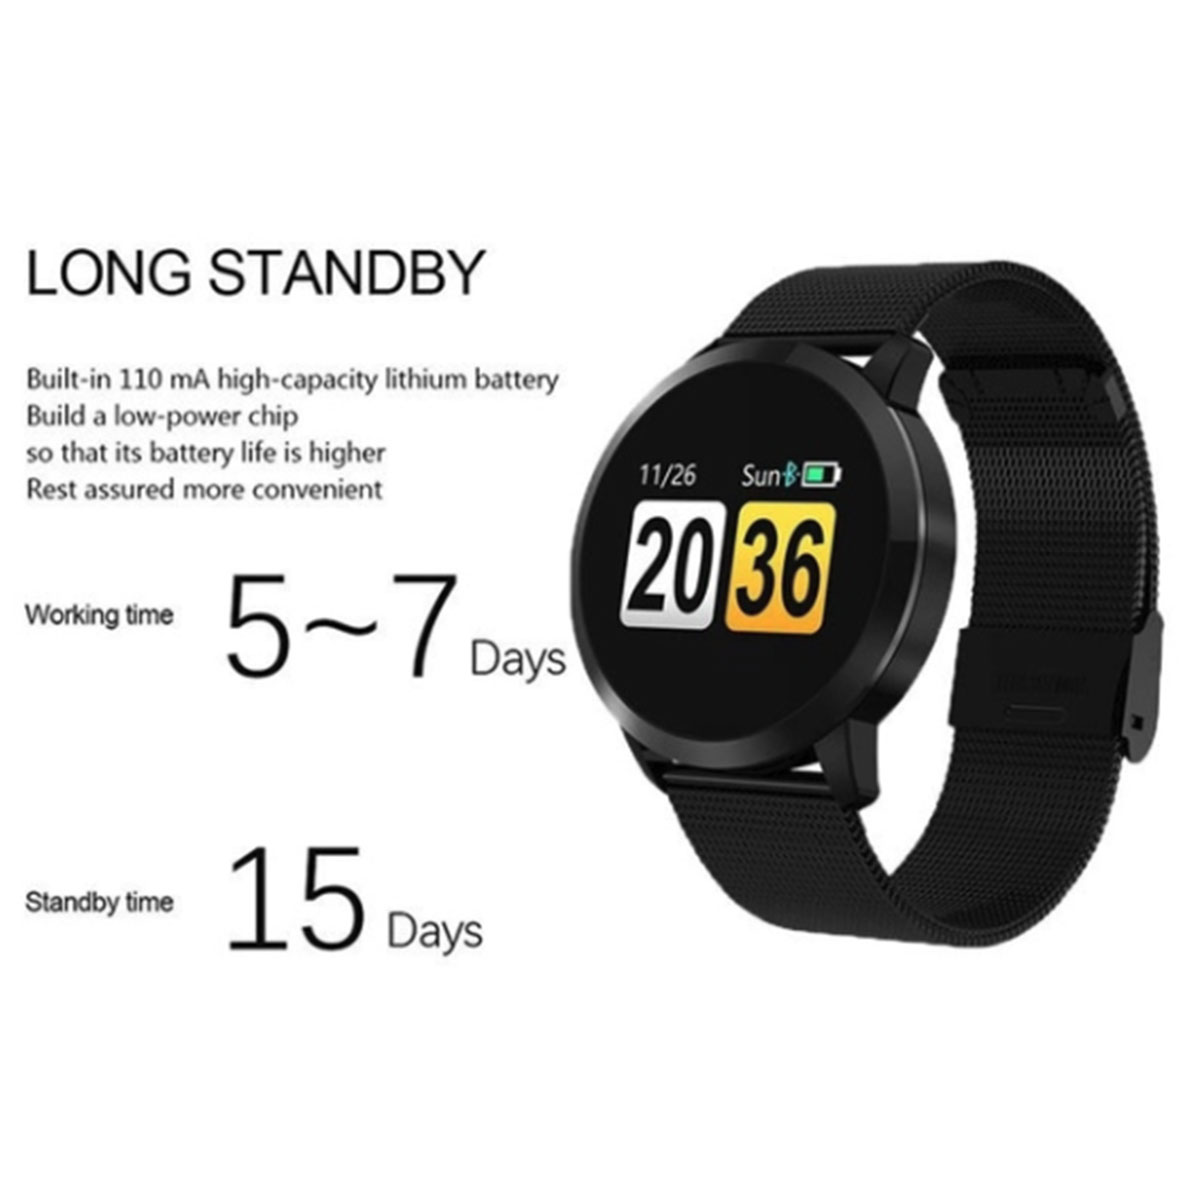 Image 5 - Q8 Smart Watch OLED Color Screen Touch Control Smartwatch Men Women Thin light Fashion Fitness Tracker Heart Rate monitor-in Smart Watches from Consumer Electronics